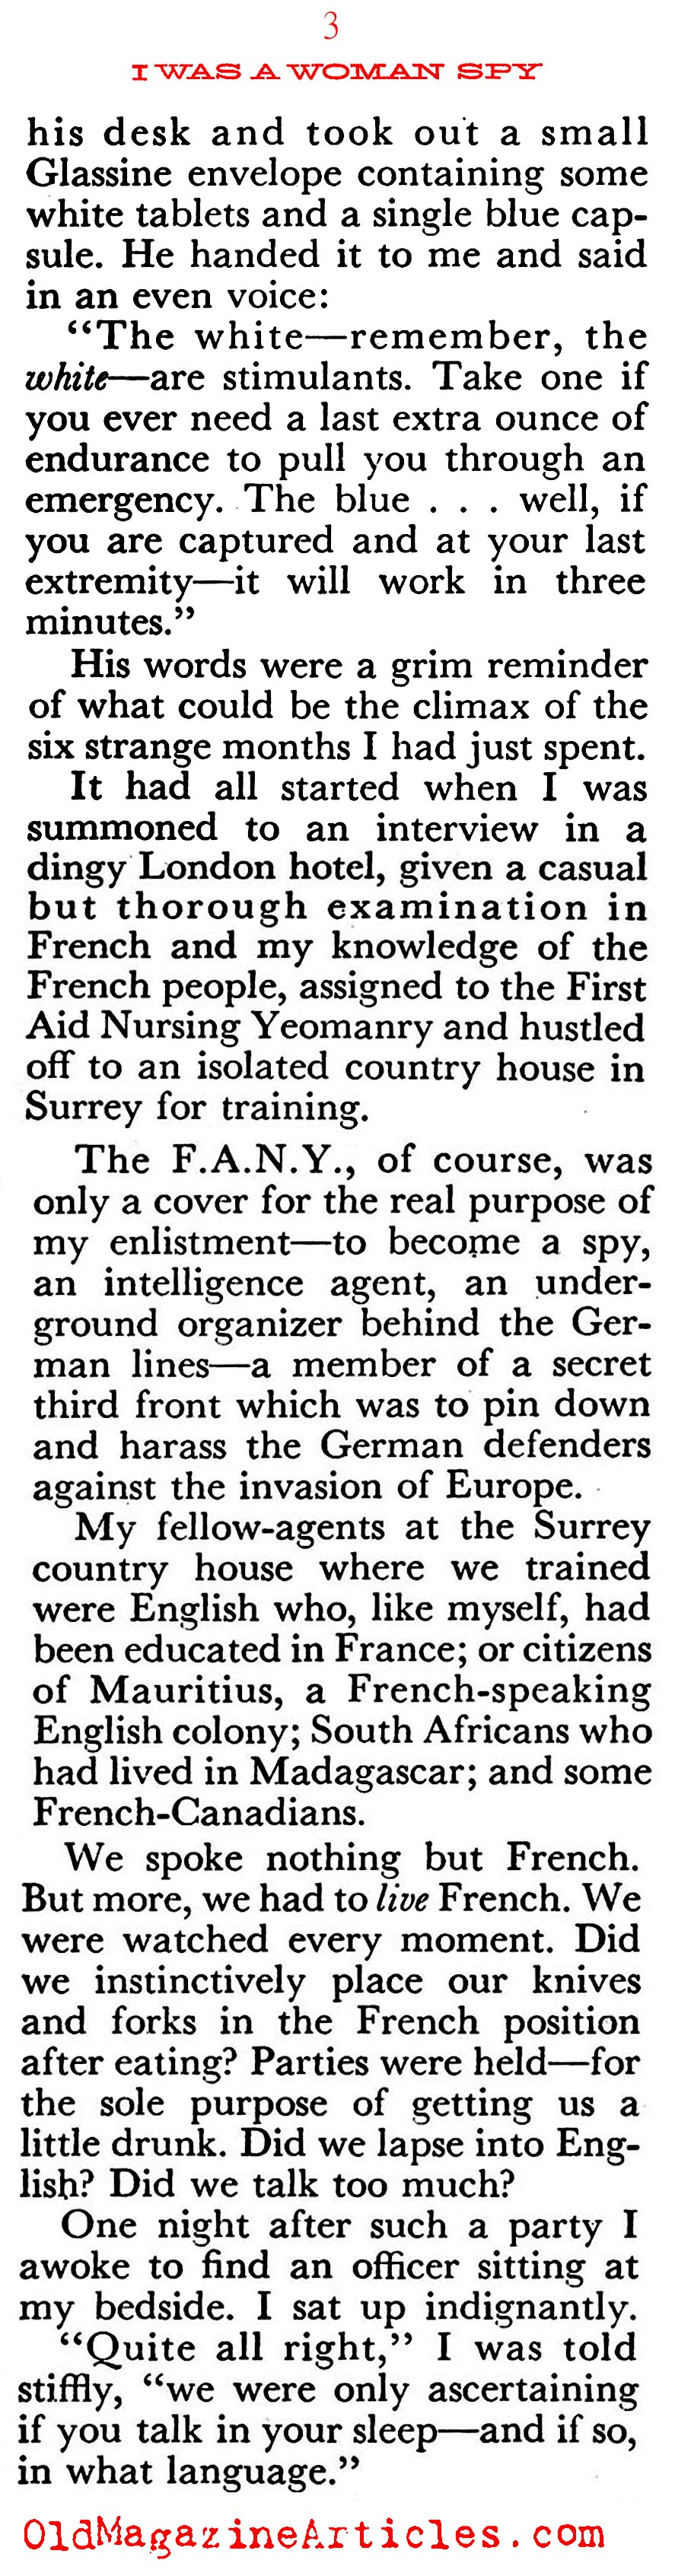 The Lady was a Spy  (Coronet Magazine, 1954)